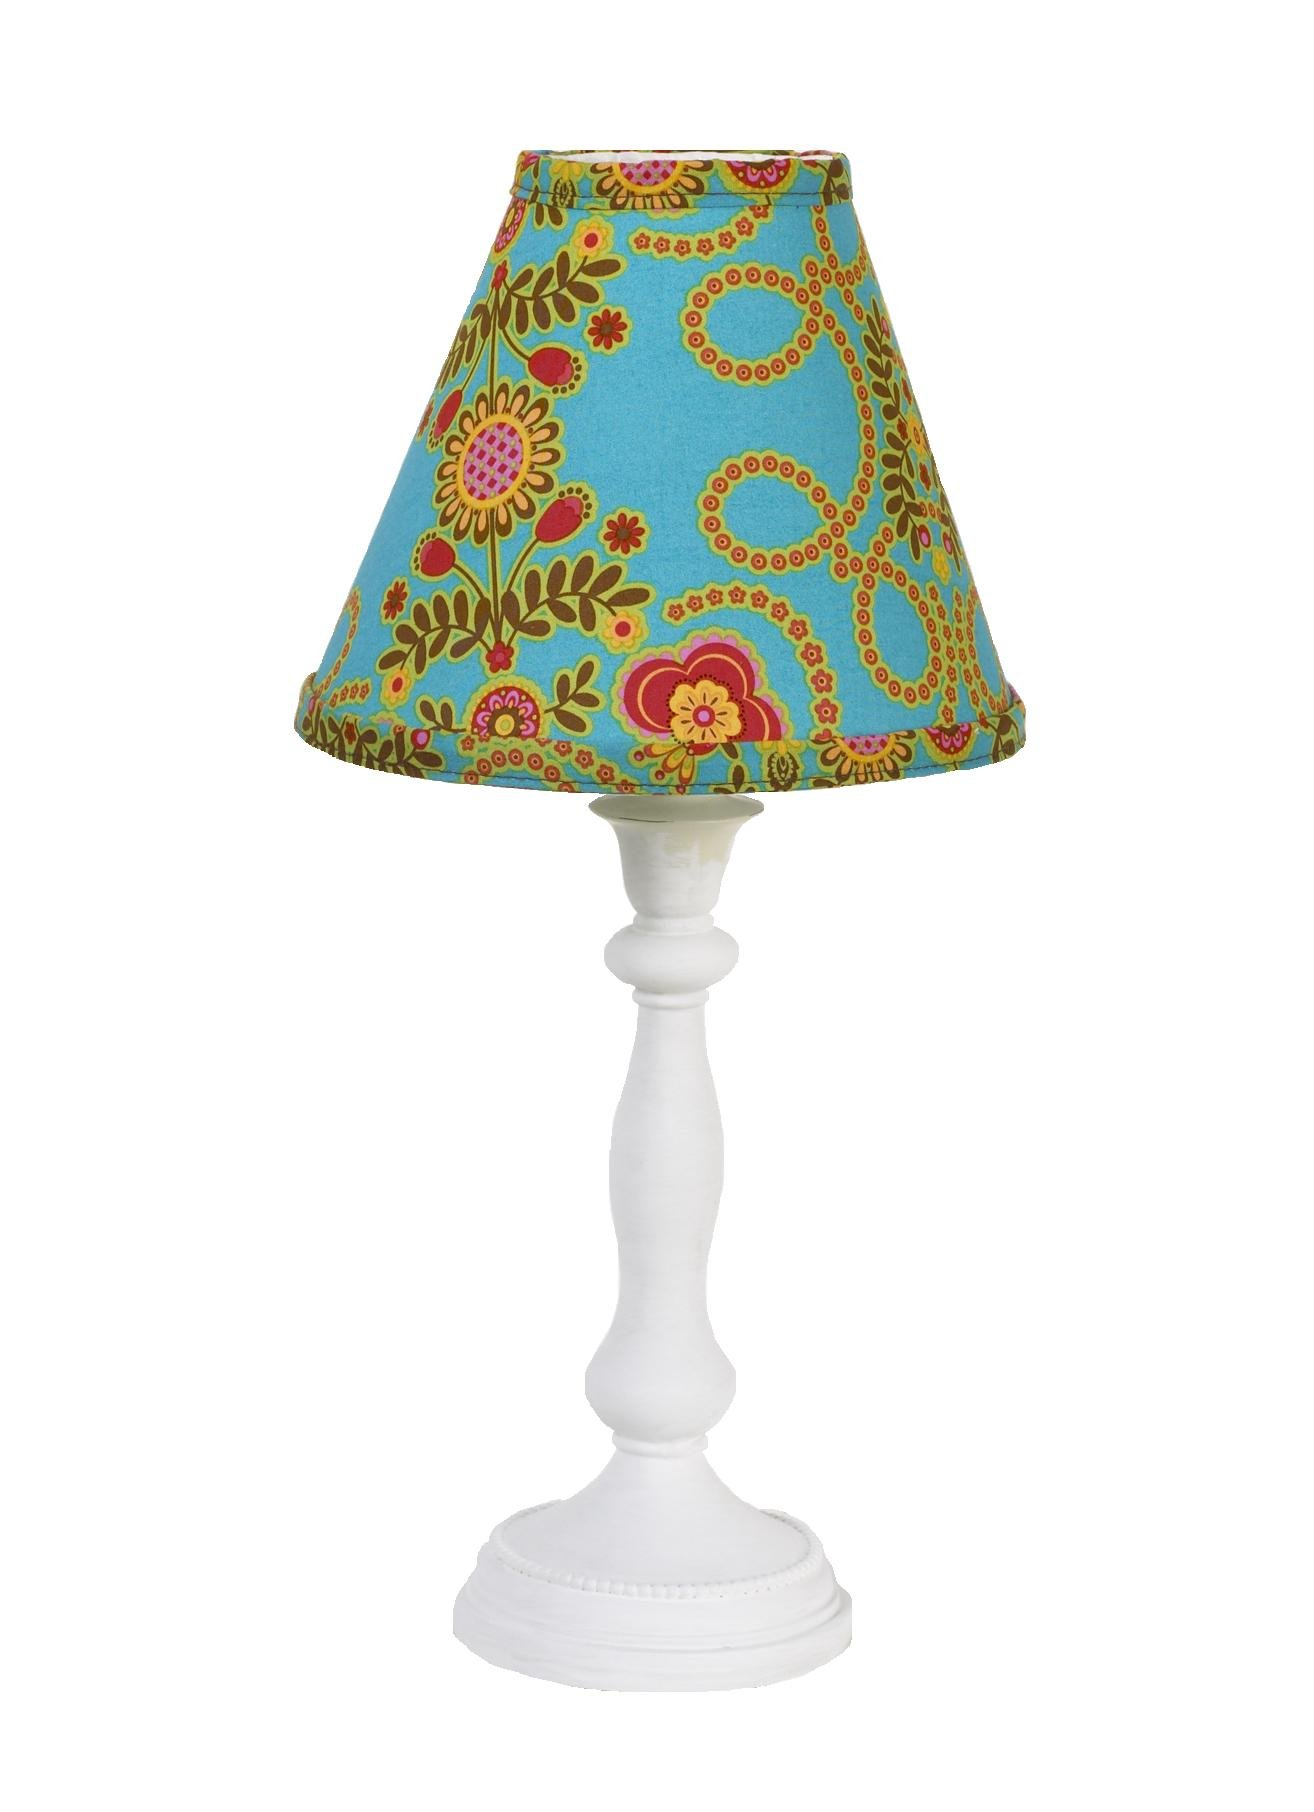 Cotton Tale Designs Gypsy Standard Lamp and Shade by Cotton Tale Designs